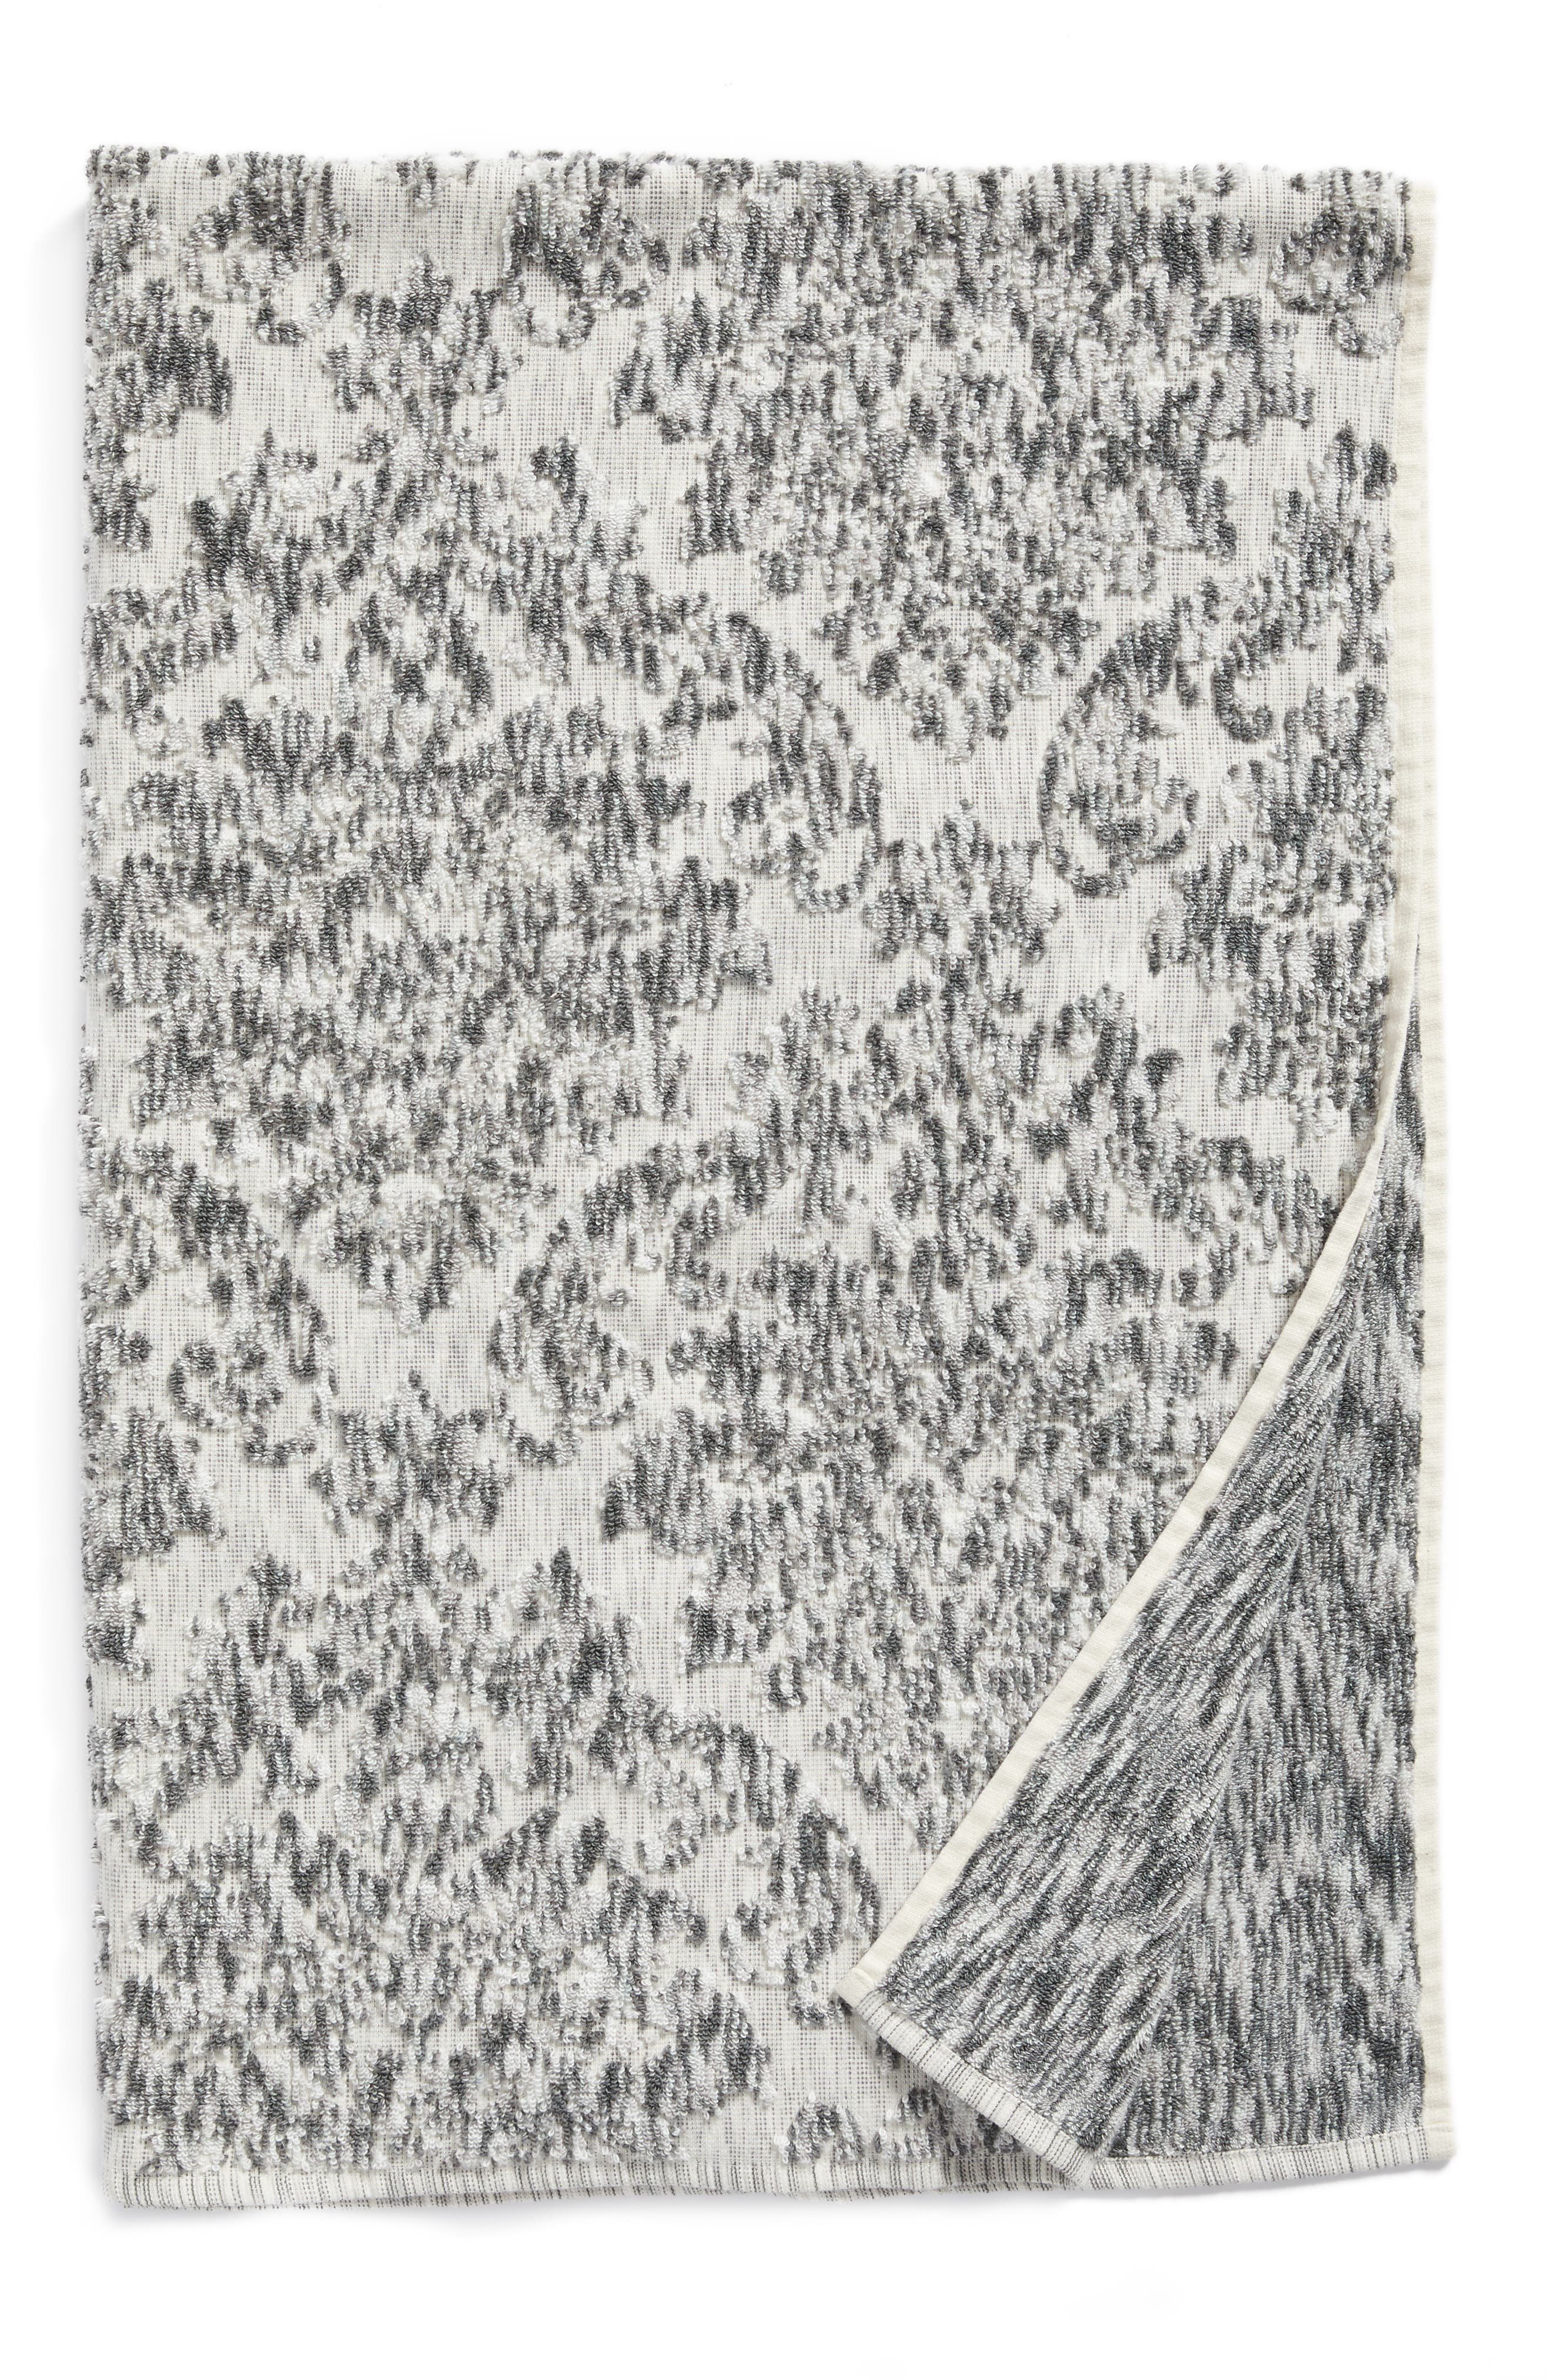 NORDSTROM AT HOME, Easton Bath Towel, Main thumbnail 1, color, GREY FROST MULTI